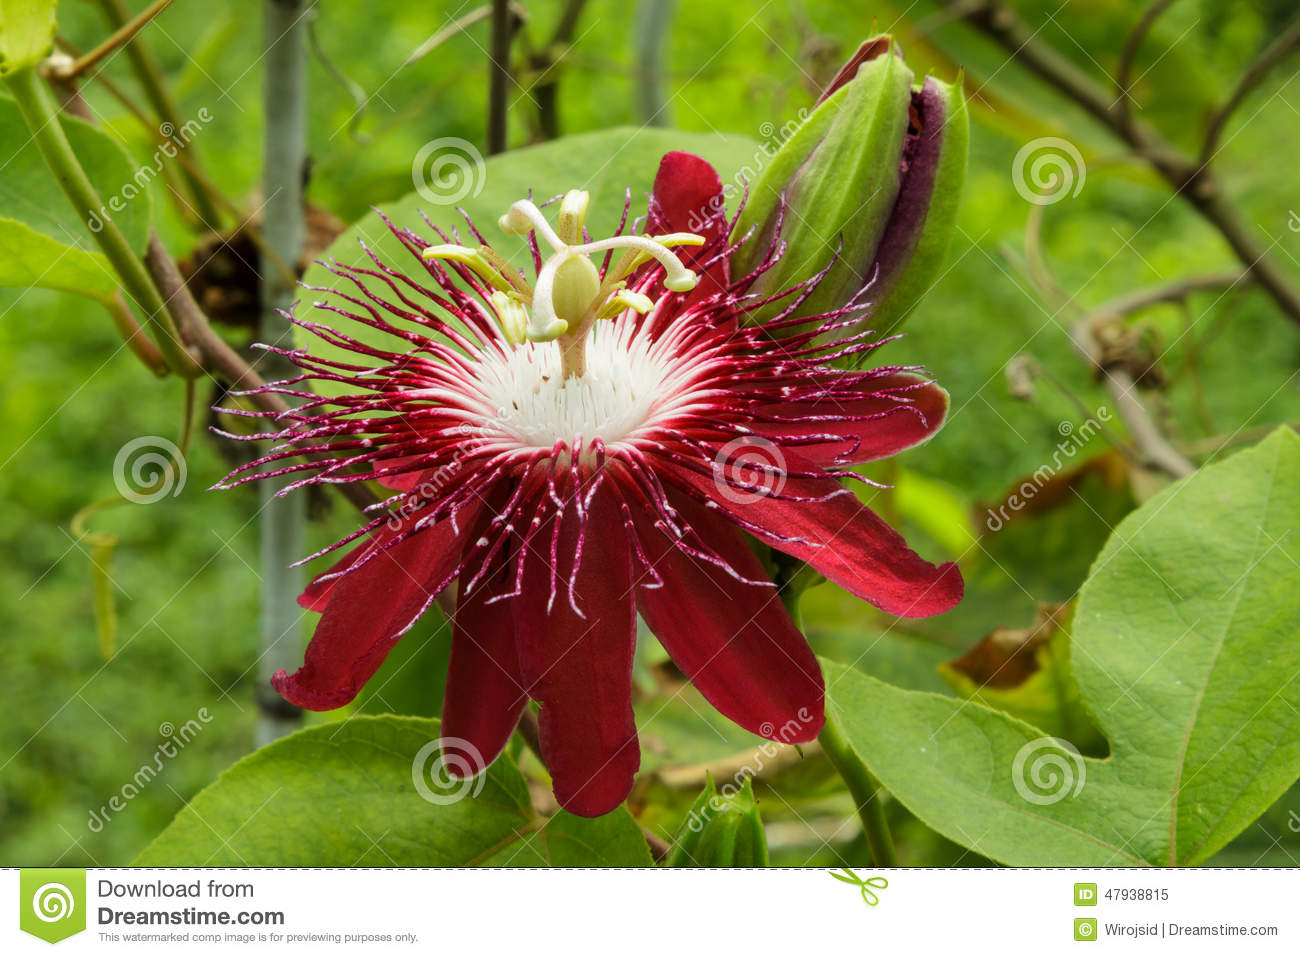 Passion flowers or passion vines